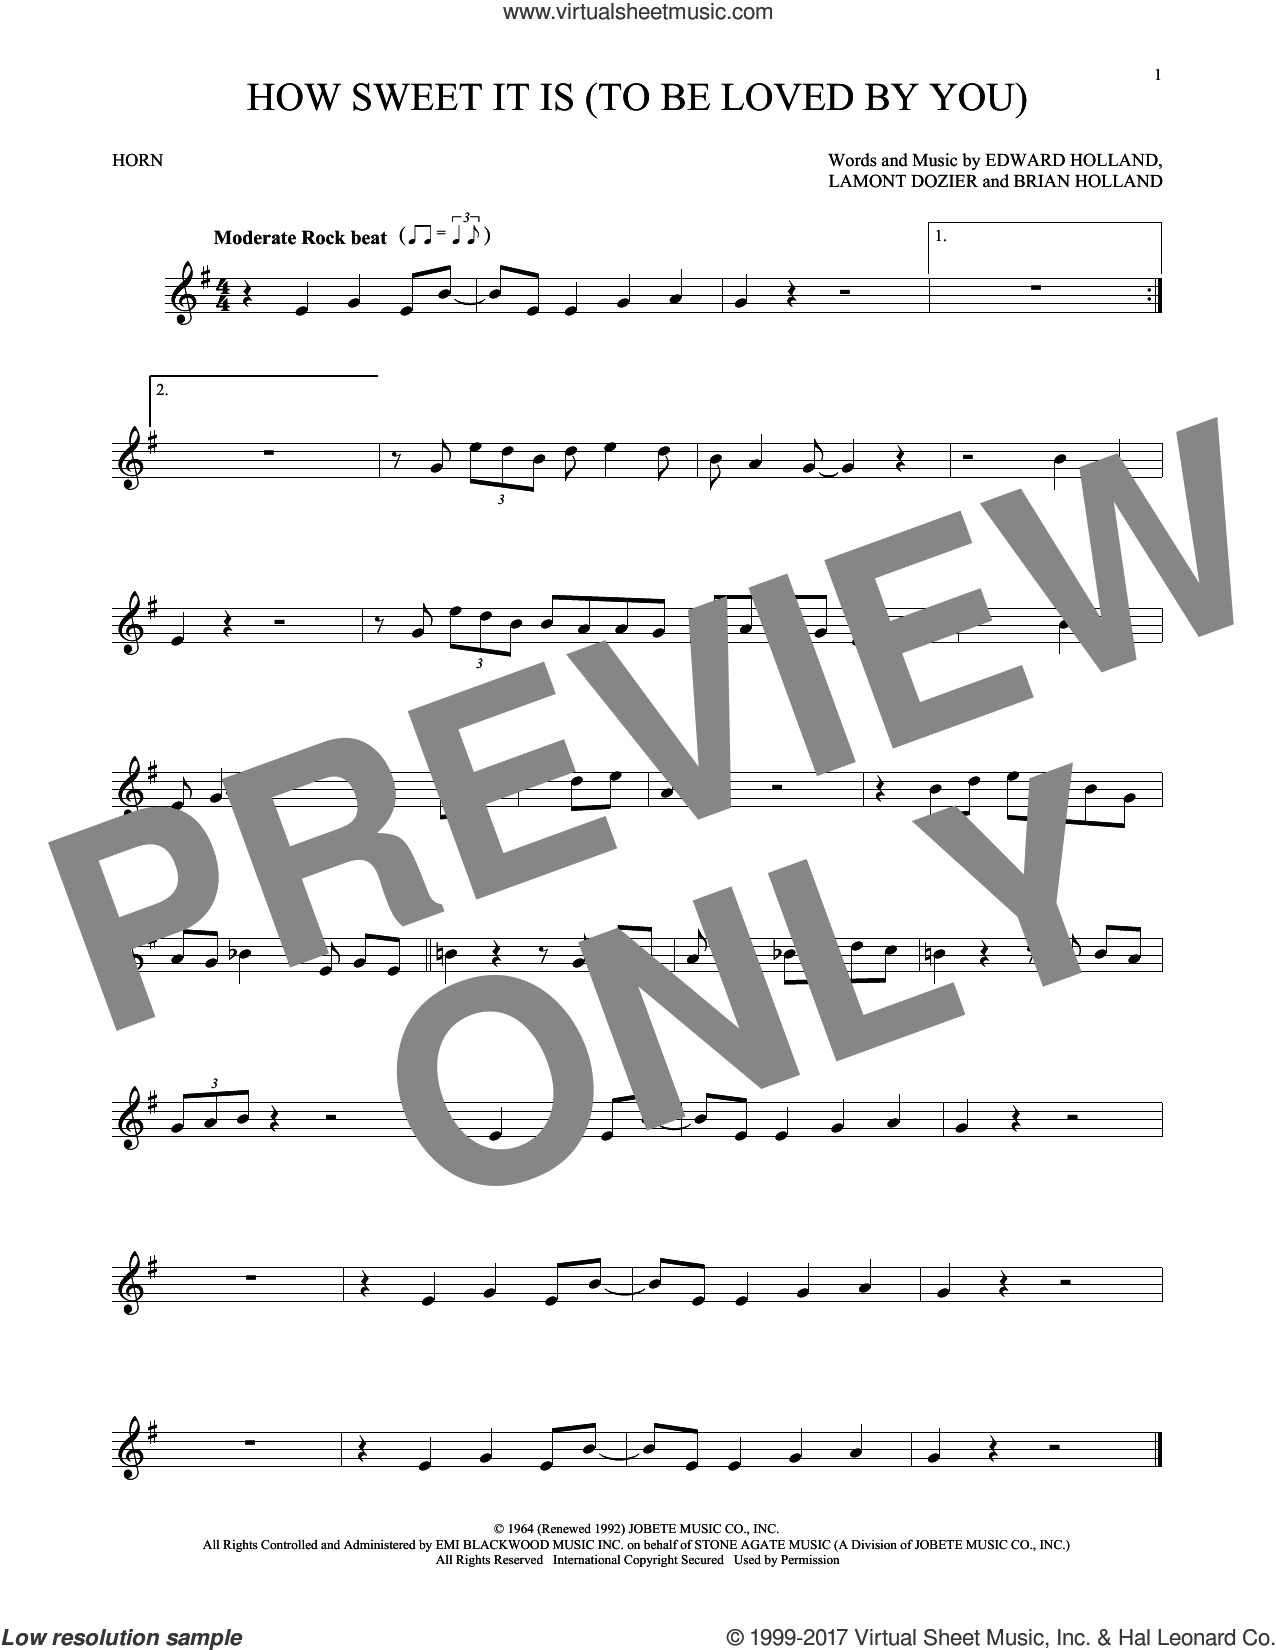 How Sweet It Is (To Be Loved By You) sheet music for horn solo by James Taylor, Marvin Gaye, Brian Holland, Eddie Holland and Lamont Dozier, intermediate. Score Image Preview.